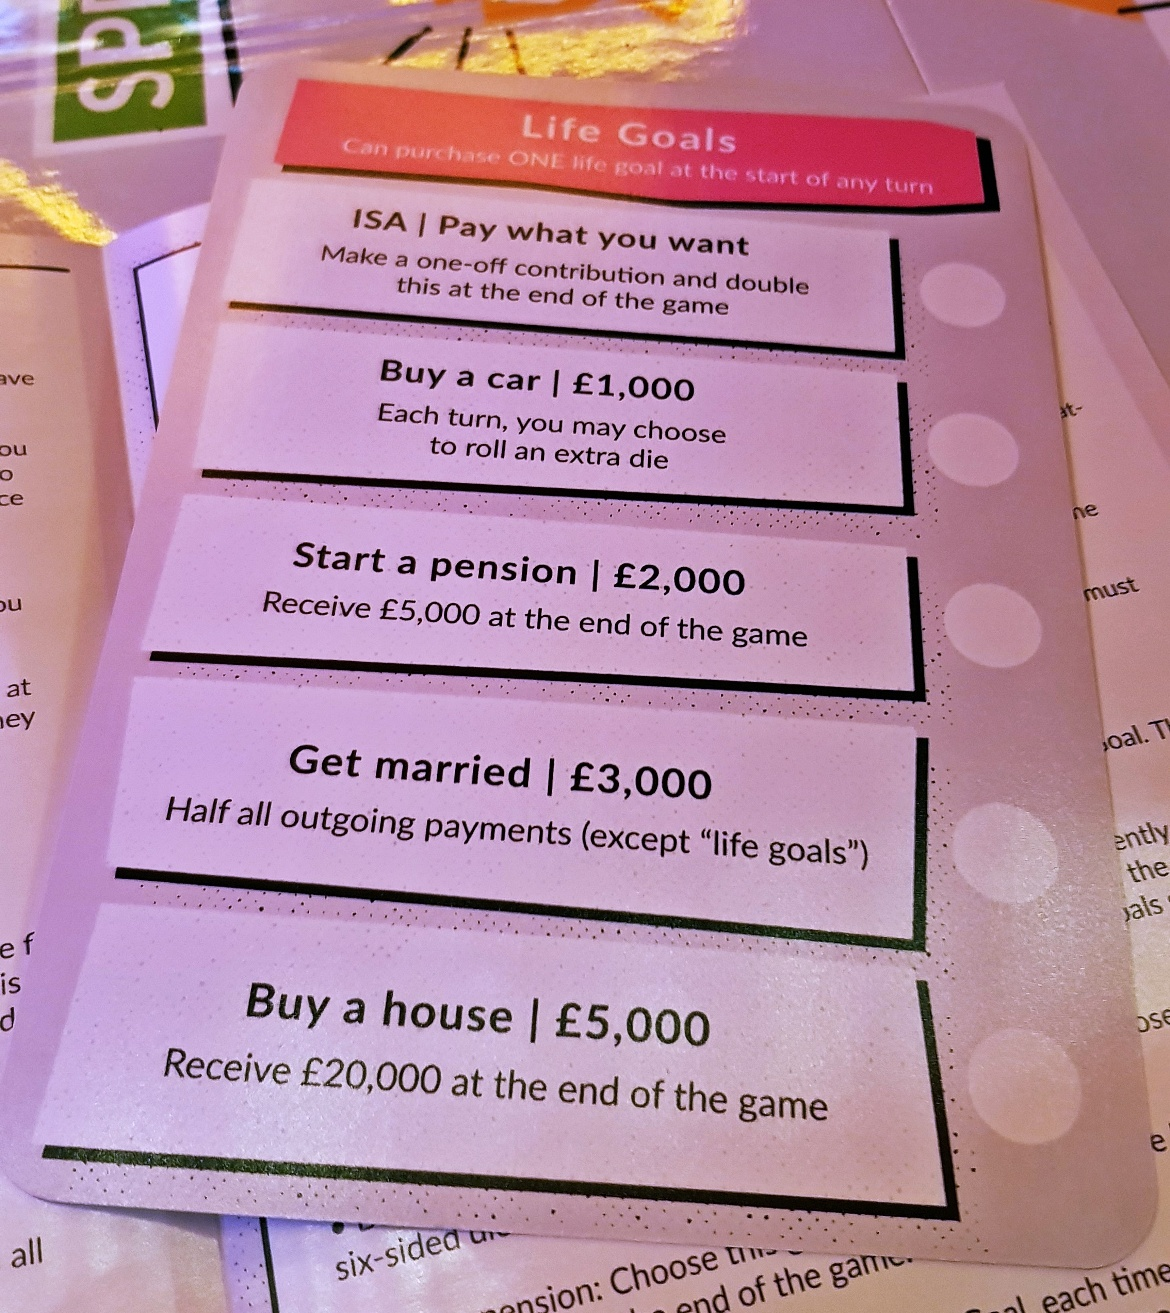 Life goals - giffgaff gameplan's Spend or Save boardgame by BeckyBecky Blogs